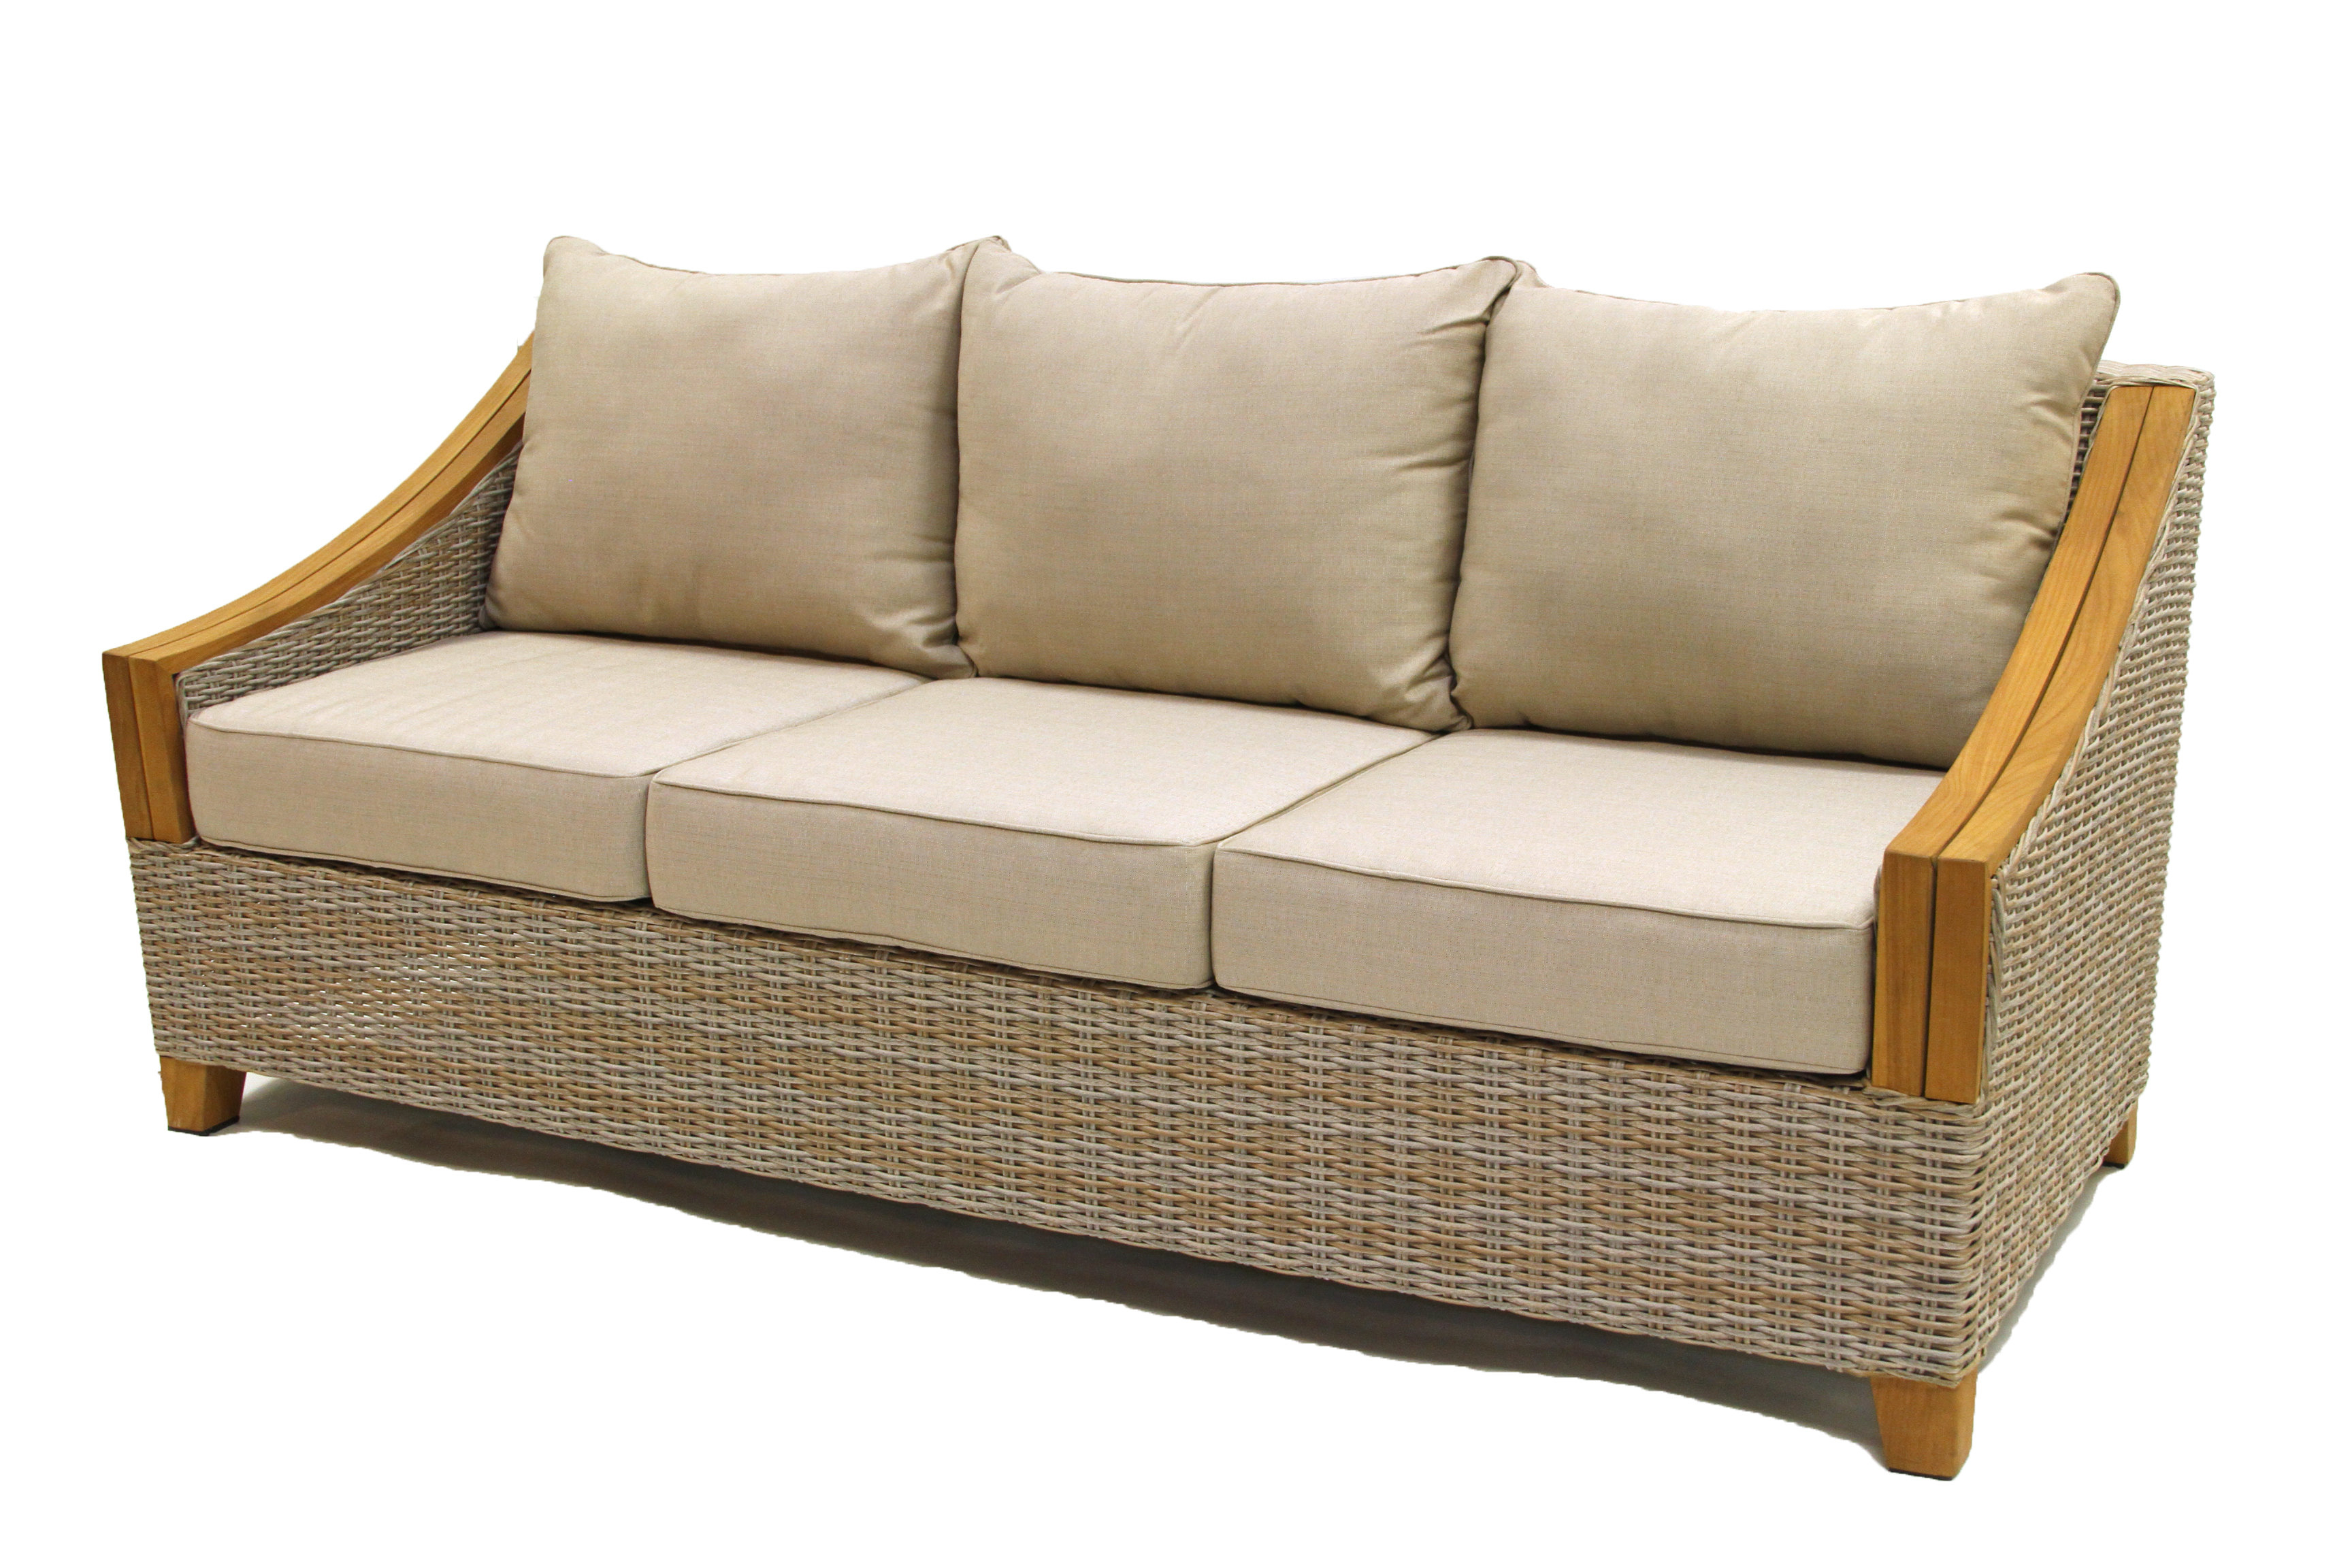 Summerton Teak Loveseats With Cushions With Most Up To Date Kincaid Teak Patio Sofa With Sunbrella Cushions (View 16 of 20)